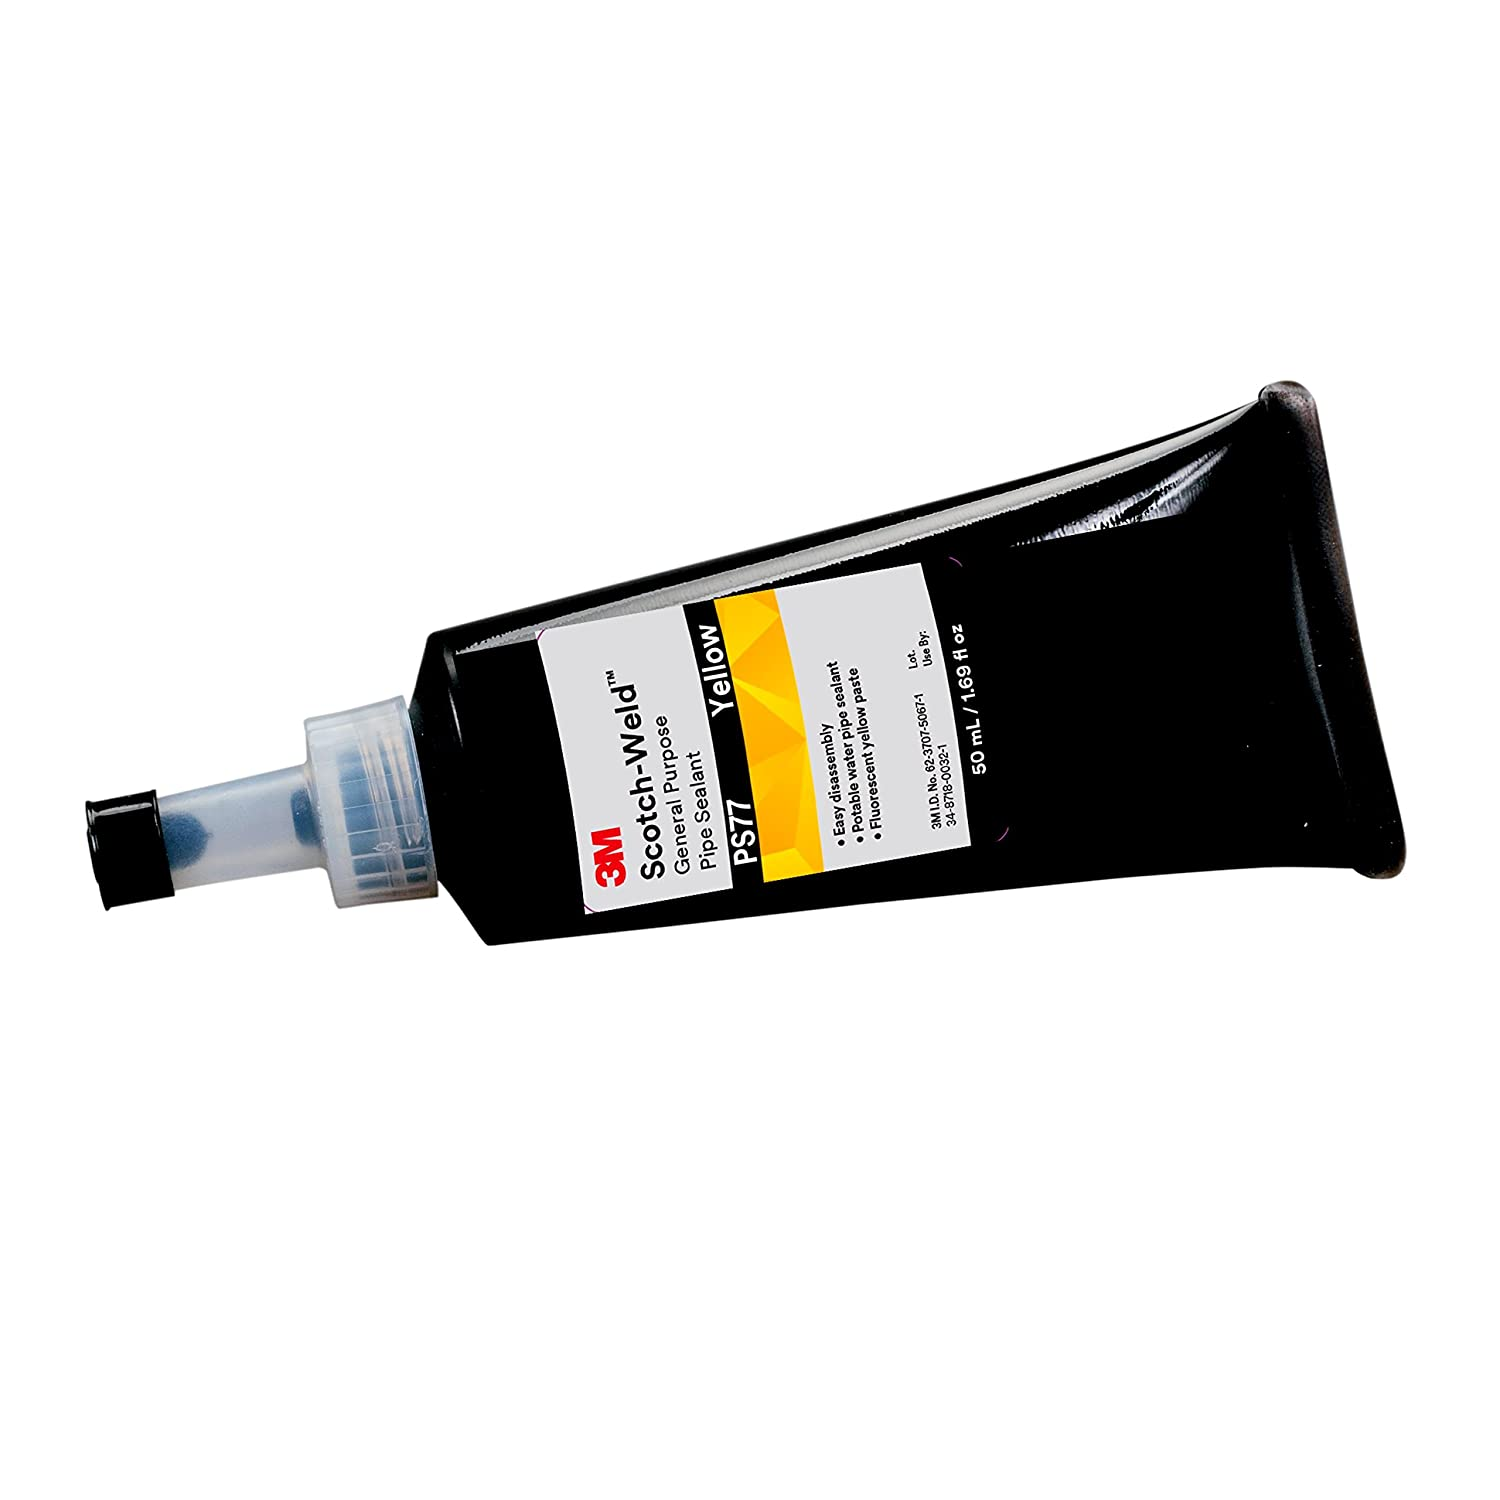 3M Scotch-Weld 99635 General Purpose Pipe Sealant PS77 50 mL Tube, Yellow, 1.69 fl. oz.